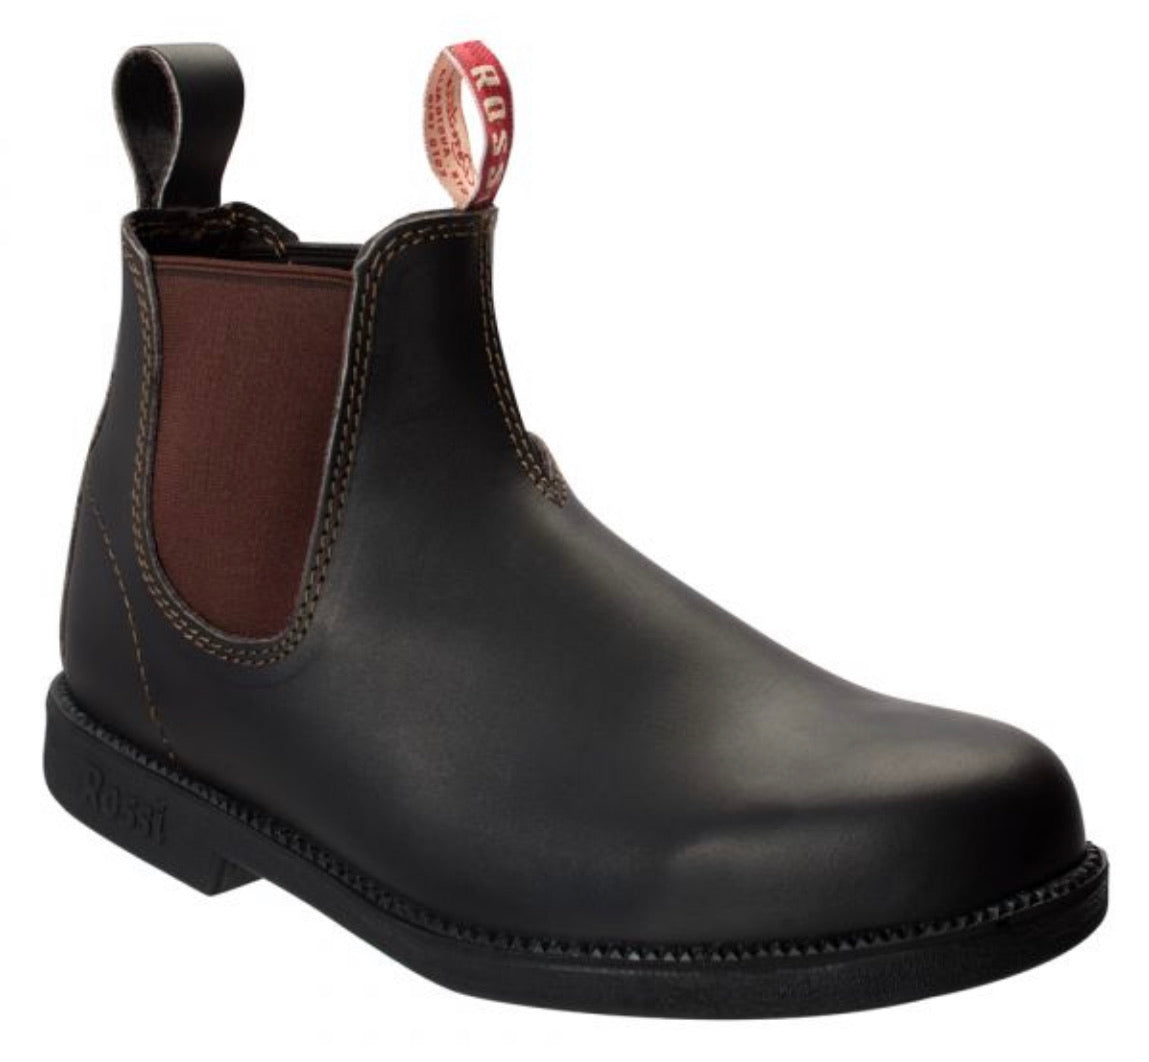 Rossi Boots 607 Booma Claret Brown Soft Toe Chelsea Boot Made In Australia